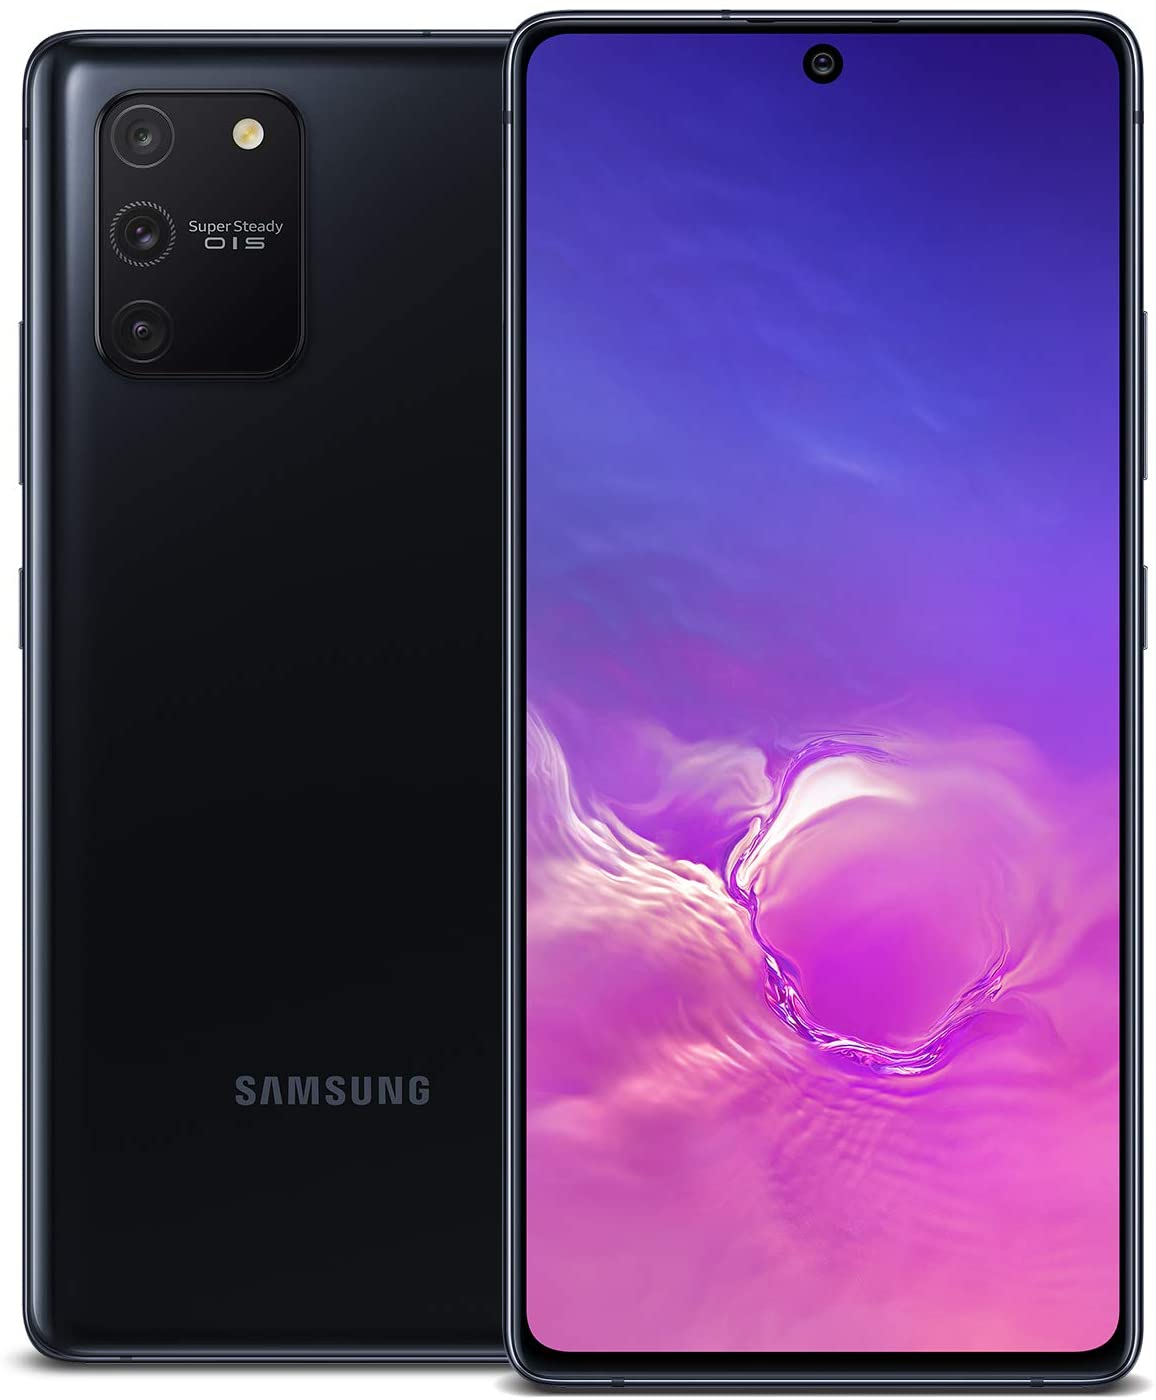 Smartphone Samsung Galaxy S10 Lite - The ultimate 2020 Review - Best price in UAE - Darahim.net